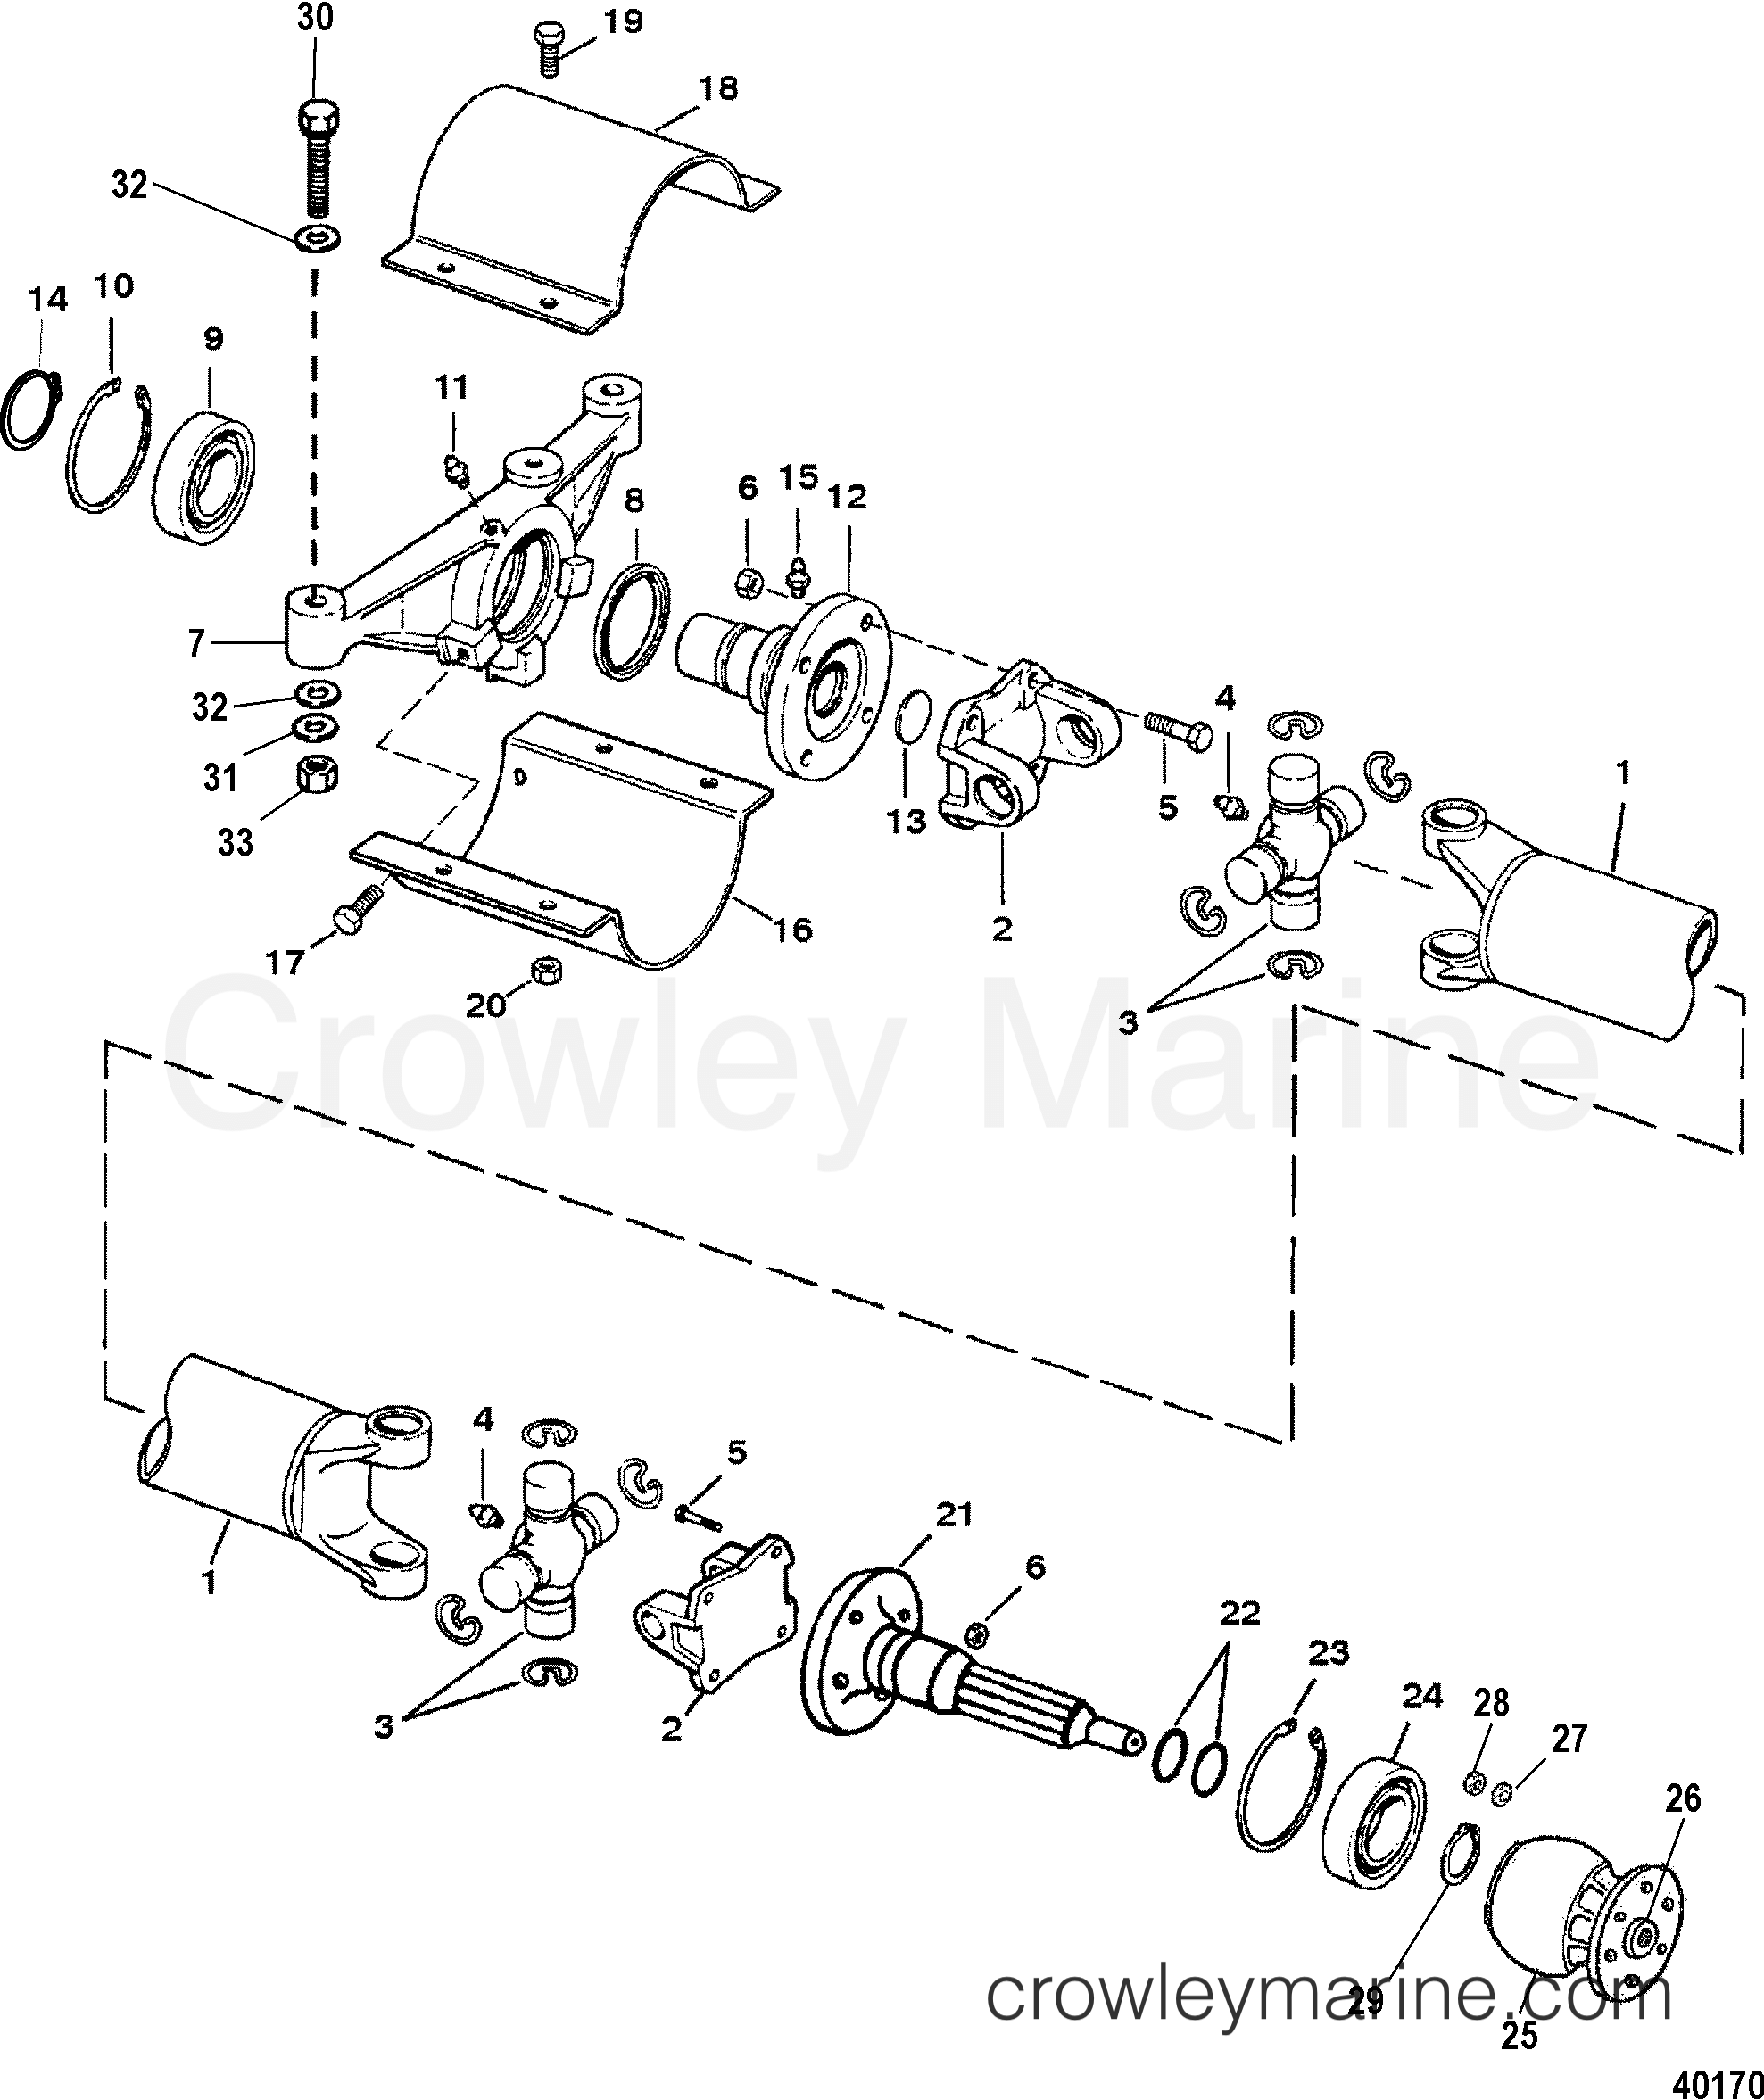 Driveshaft Extension Components M0061-g8